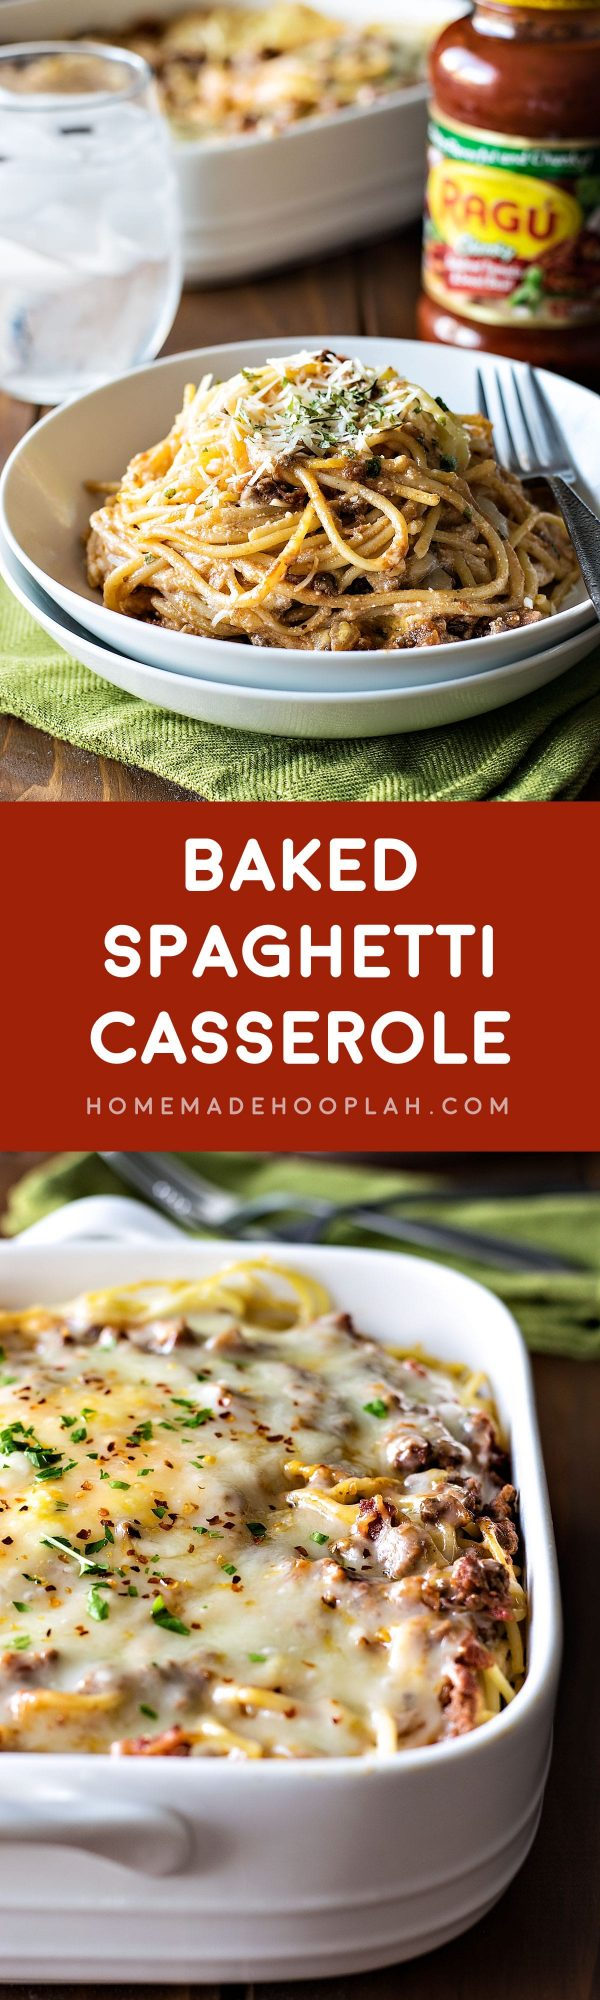 Baked Spaghetti Casserole! Revamp your boring spaghetti by baking it in a deep dish filled with delicious cheeses, savory meats, and Ragú sauce.   HomemadeHooplah.com #simmeredintradition #AD